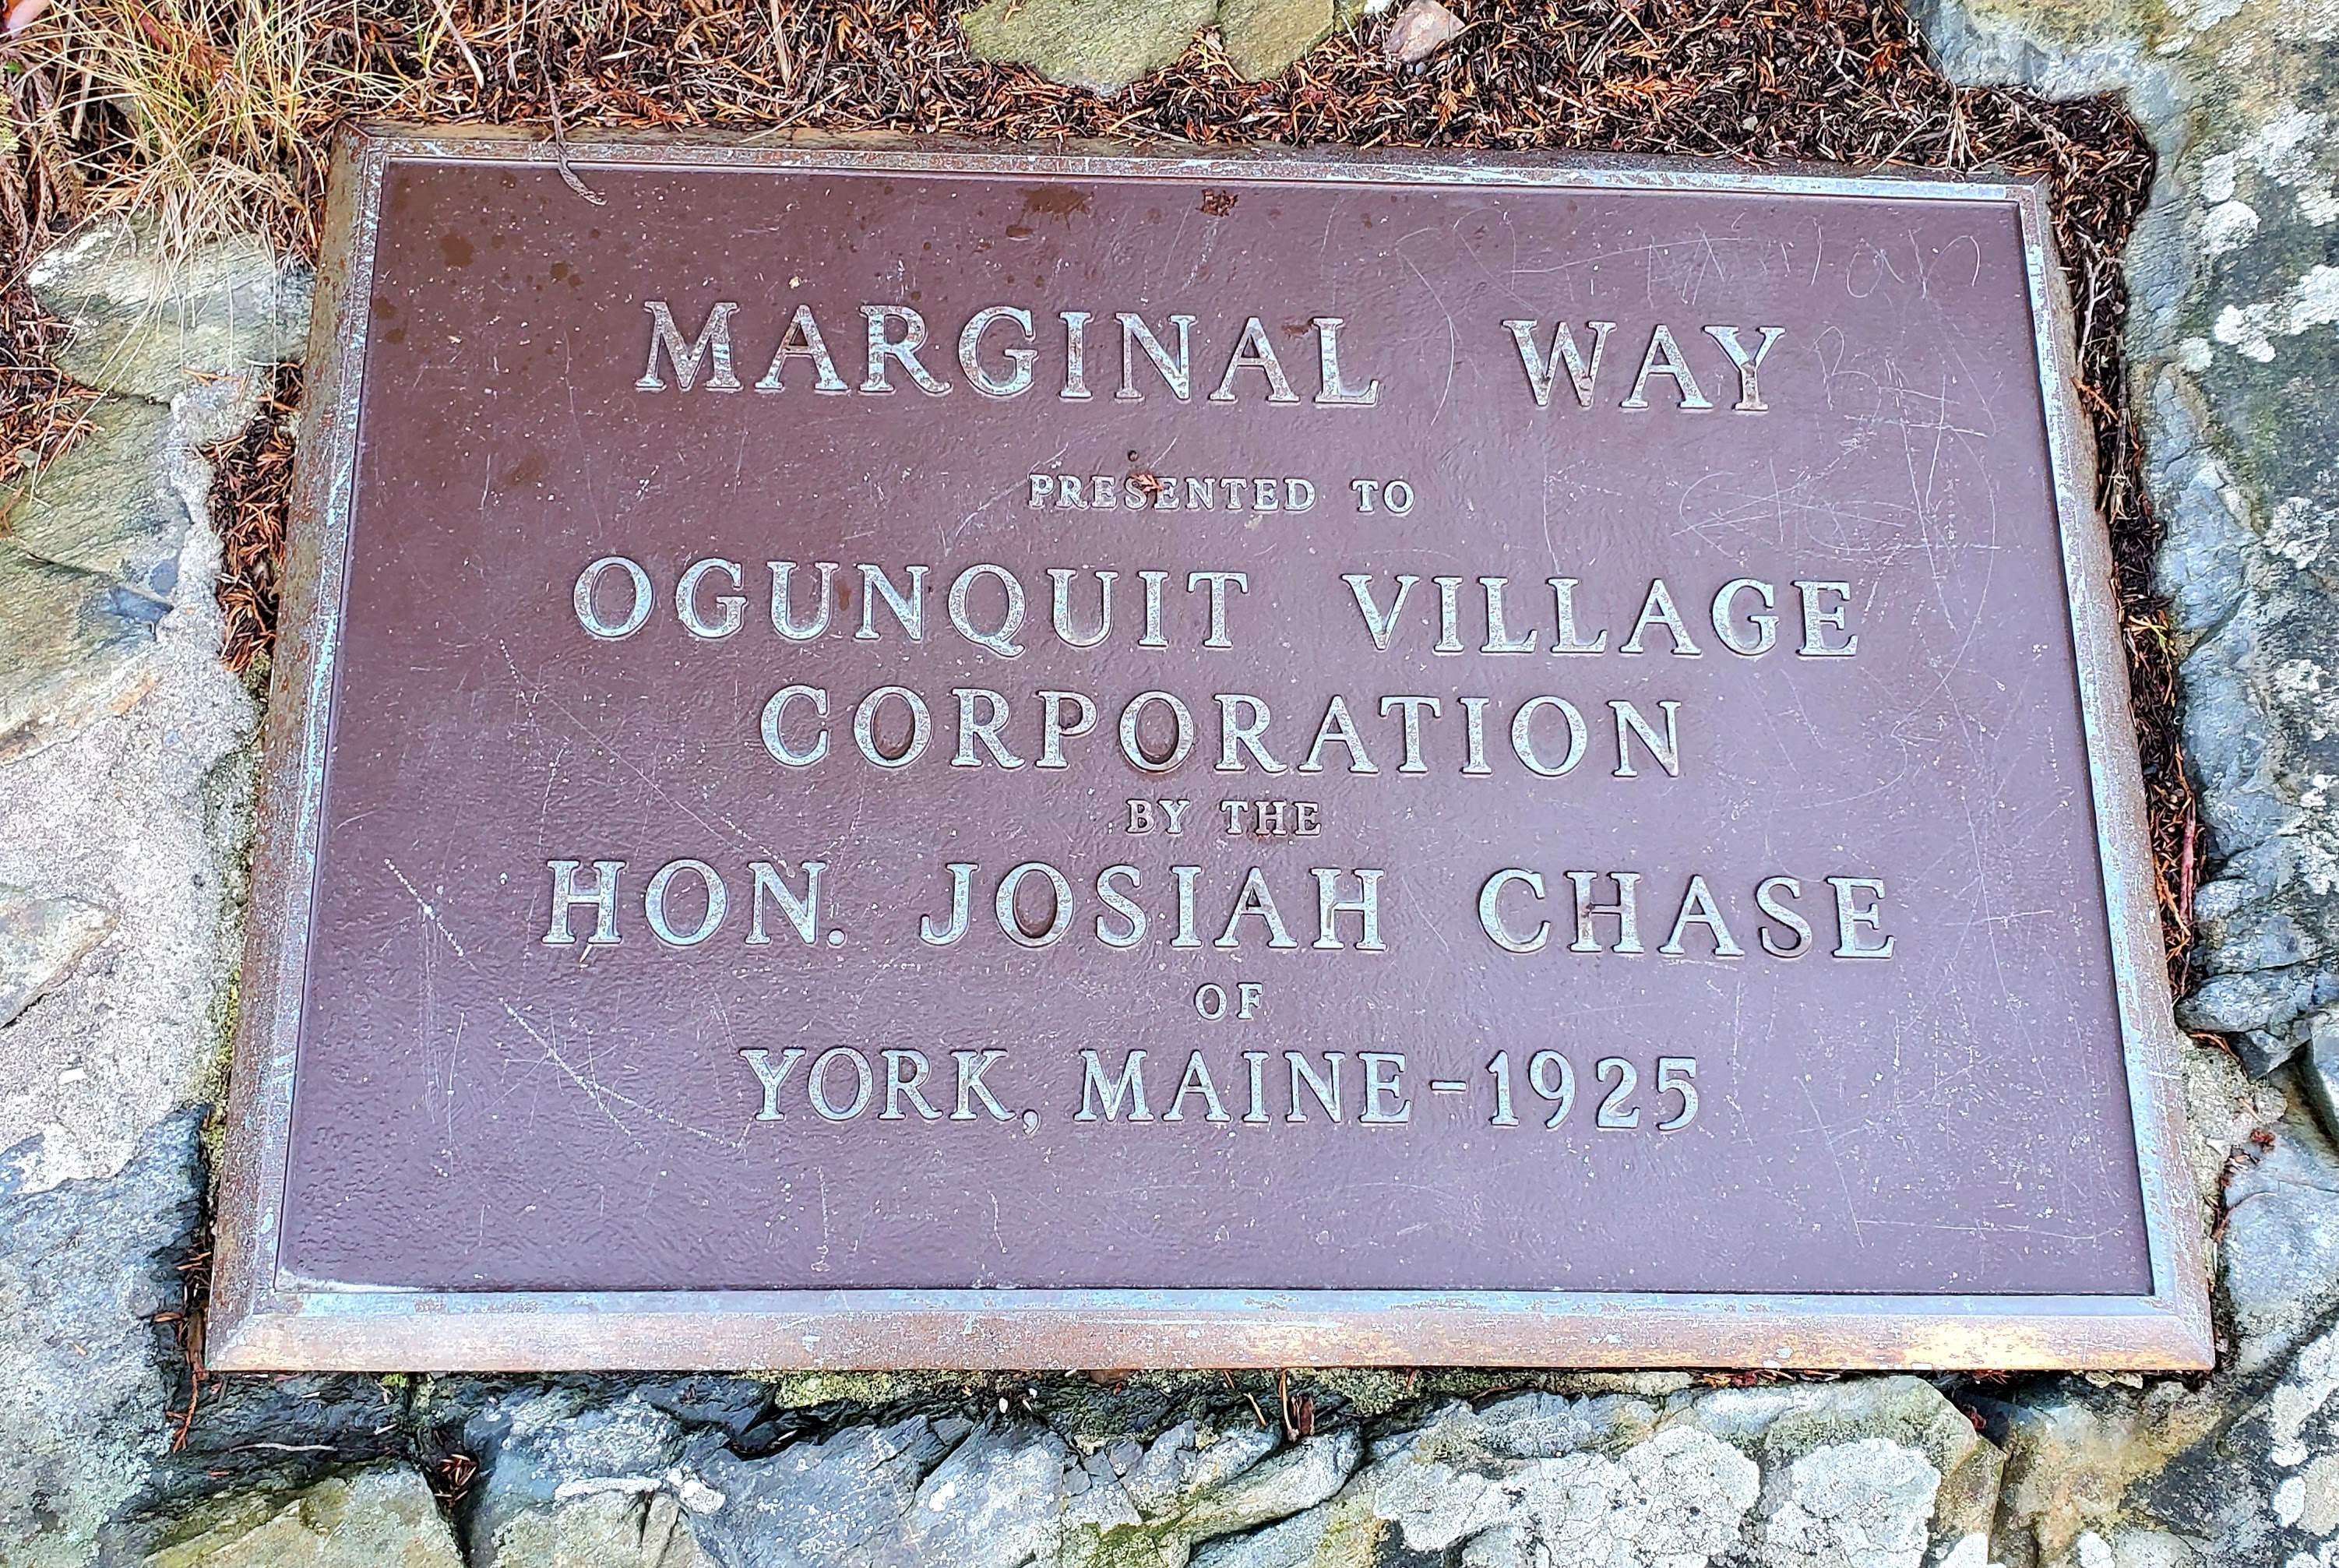 Plaque for Marginal Way: presented to Ogunquit Village Corporation by the Hon. Josiah Chase, of York, ME 1925